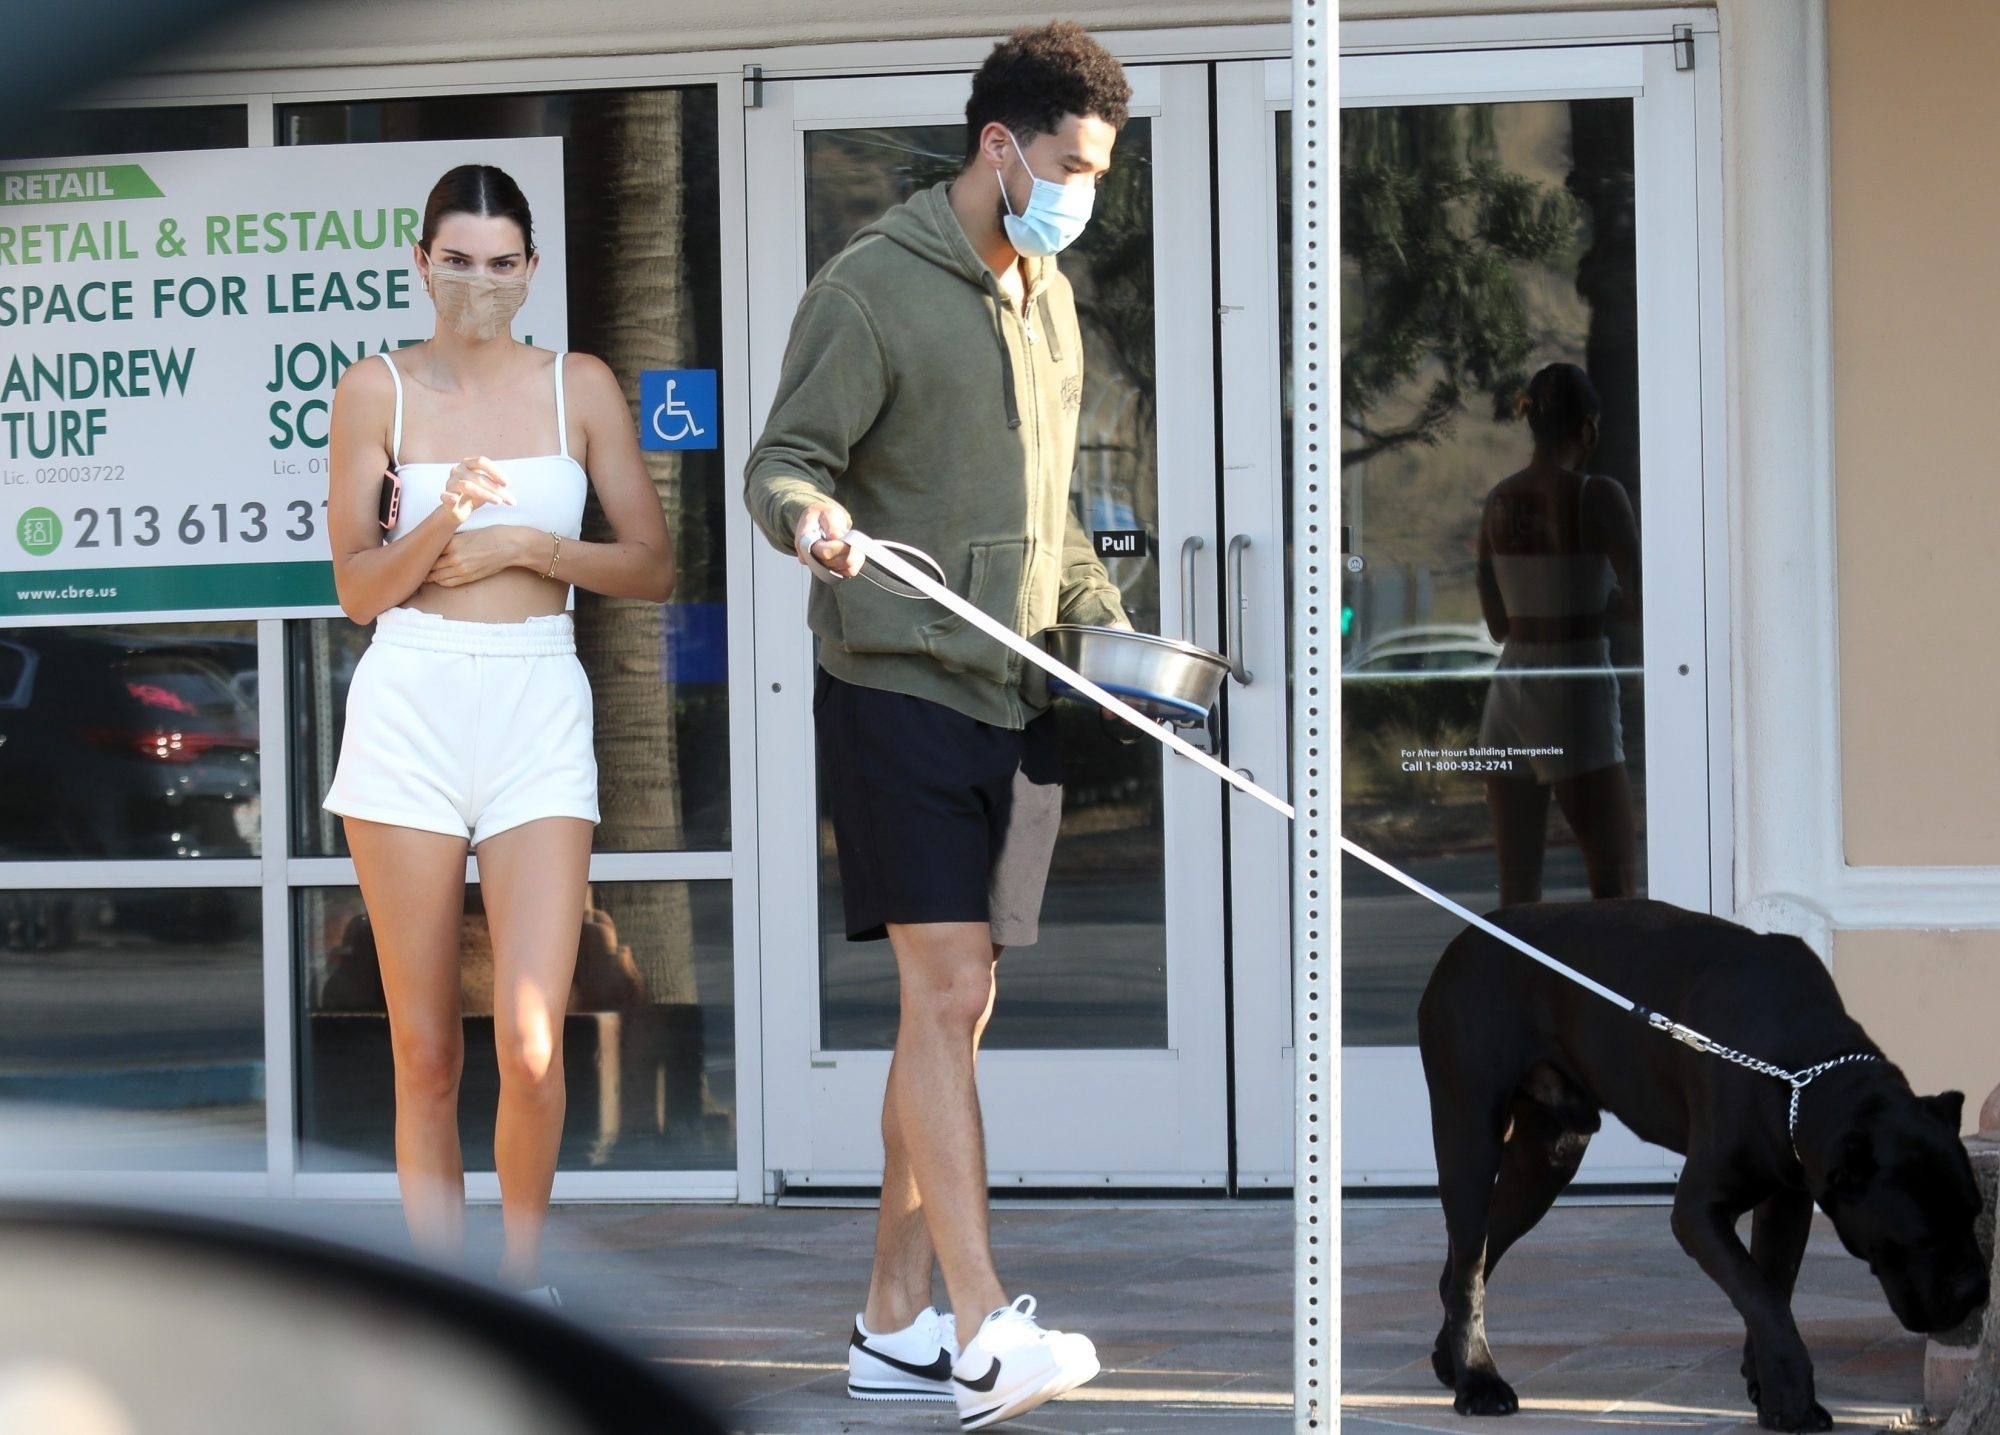 Kendall Jenner and rumored new boyfriend Devin Booker seen leaving a pet shop in Malibu while out running errands together